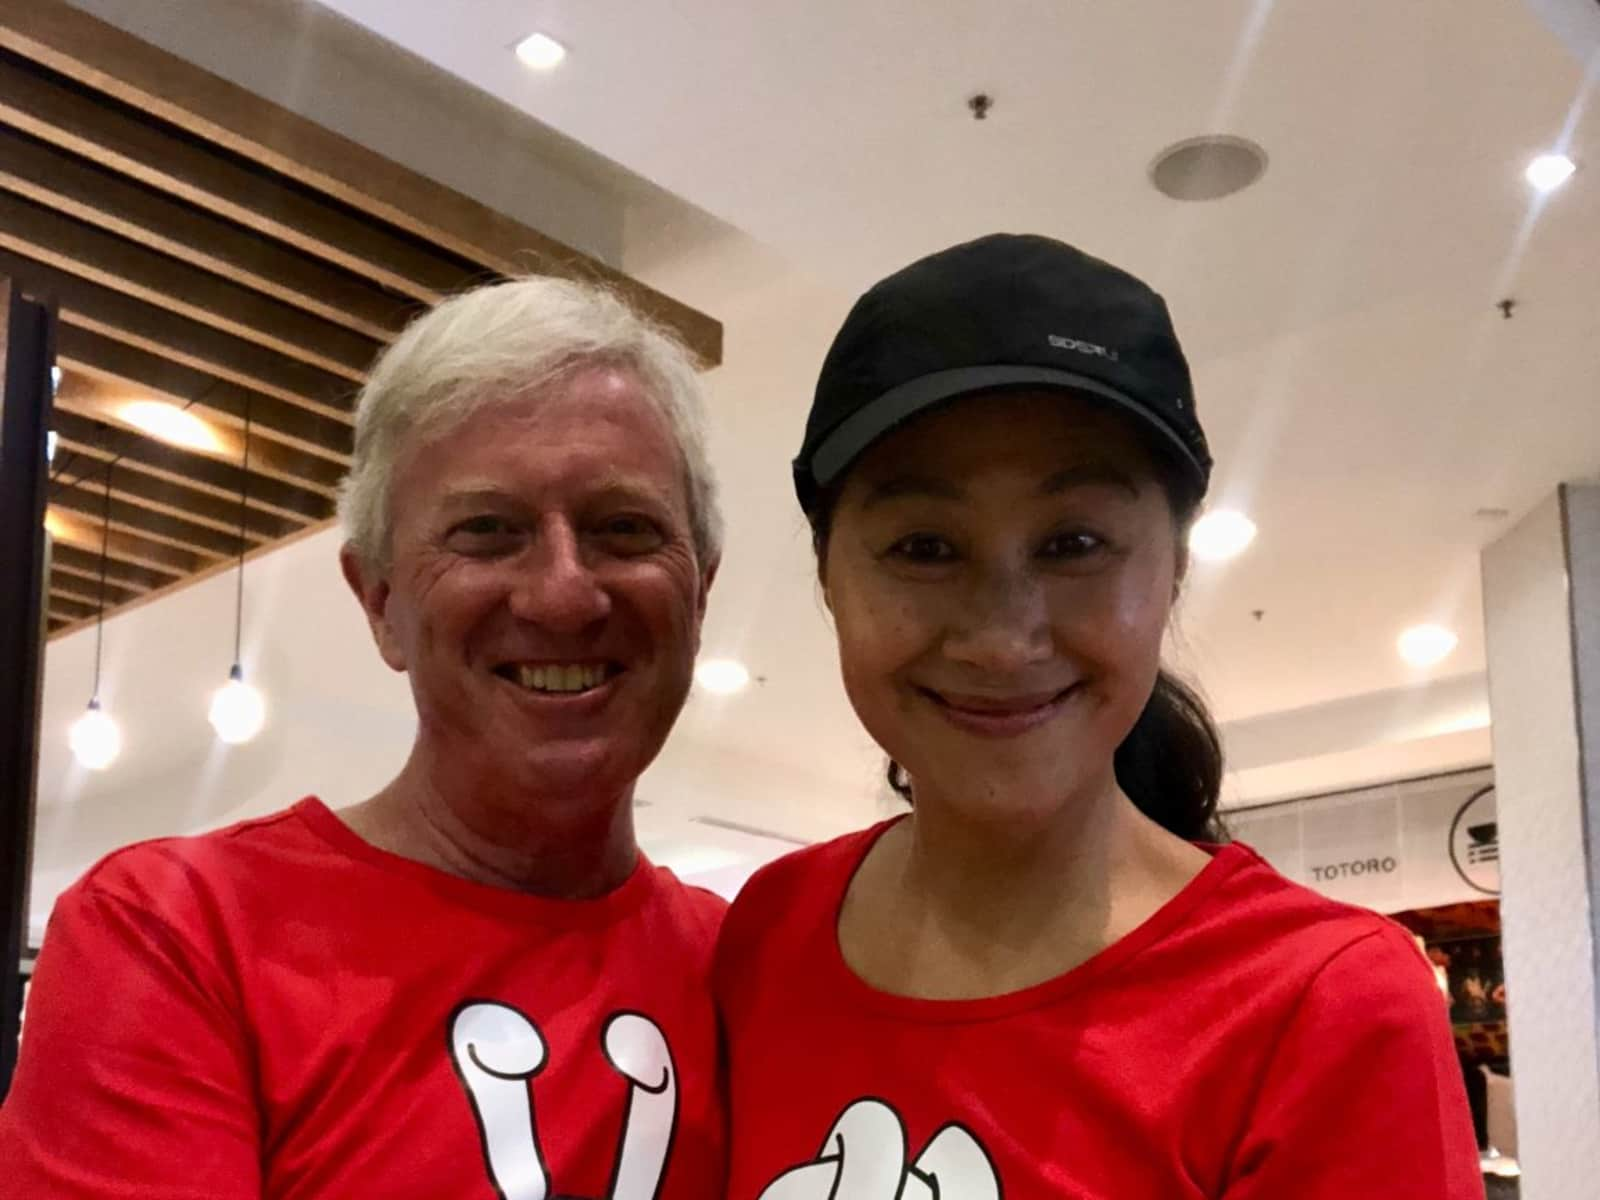 Paul & Ling from Sydney, New South Wales, Australia